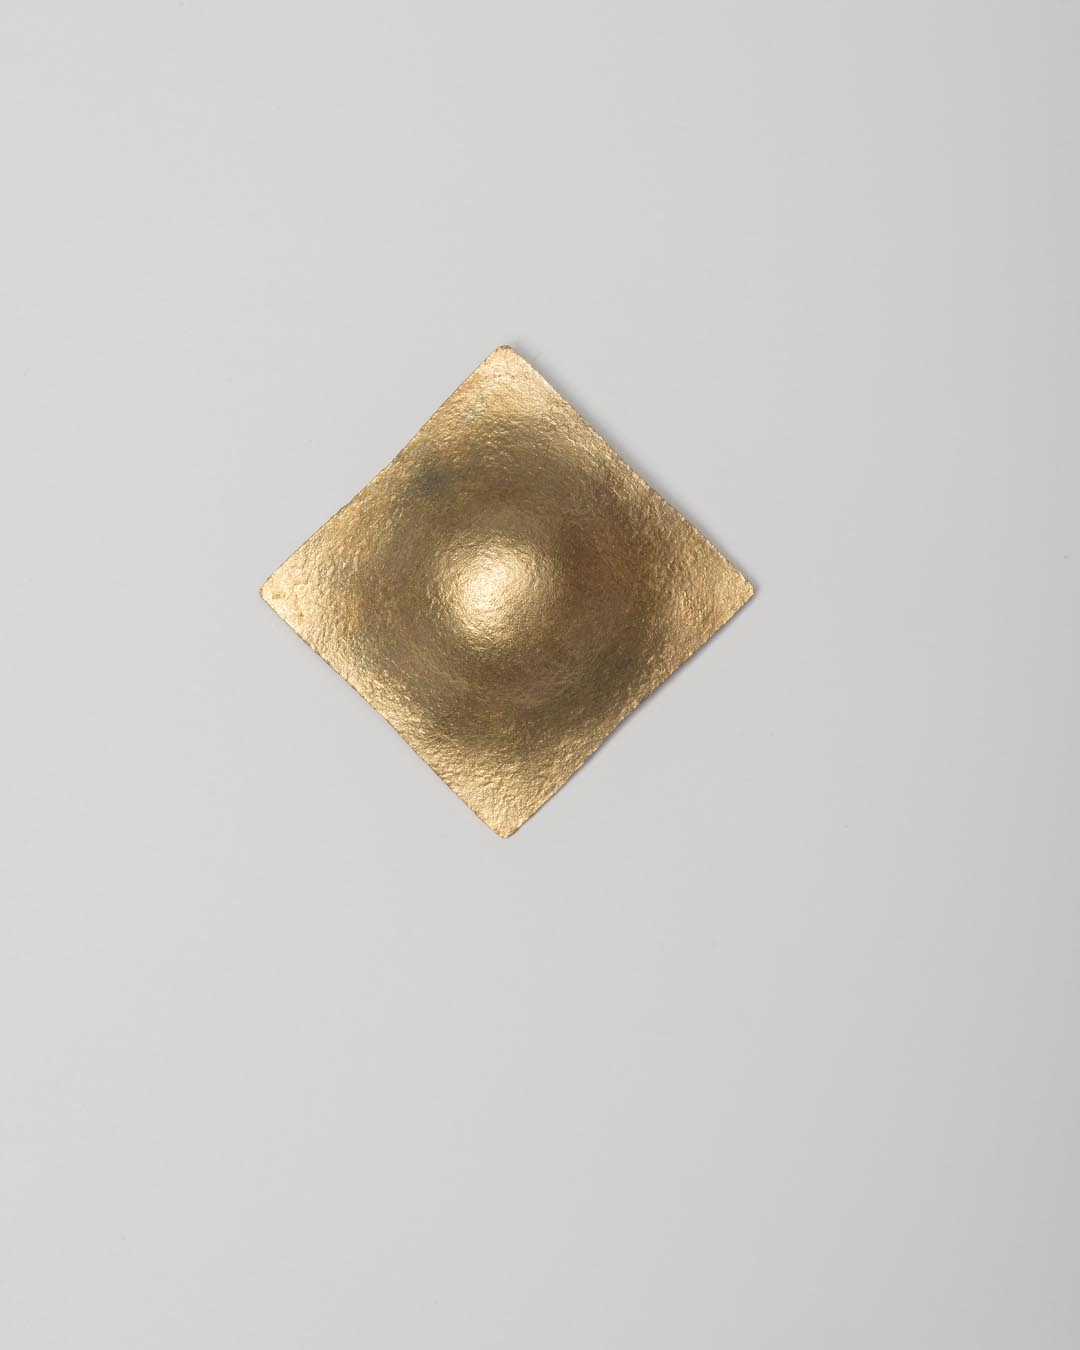 Yasuki Hiramatsu, untitled, brooch; gold-plated silver, 62 x 61.5 x 14 mm, €875